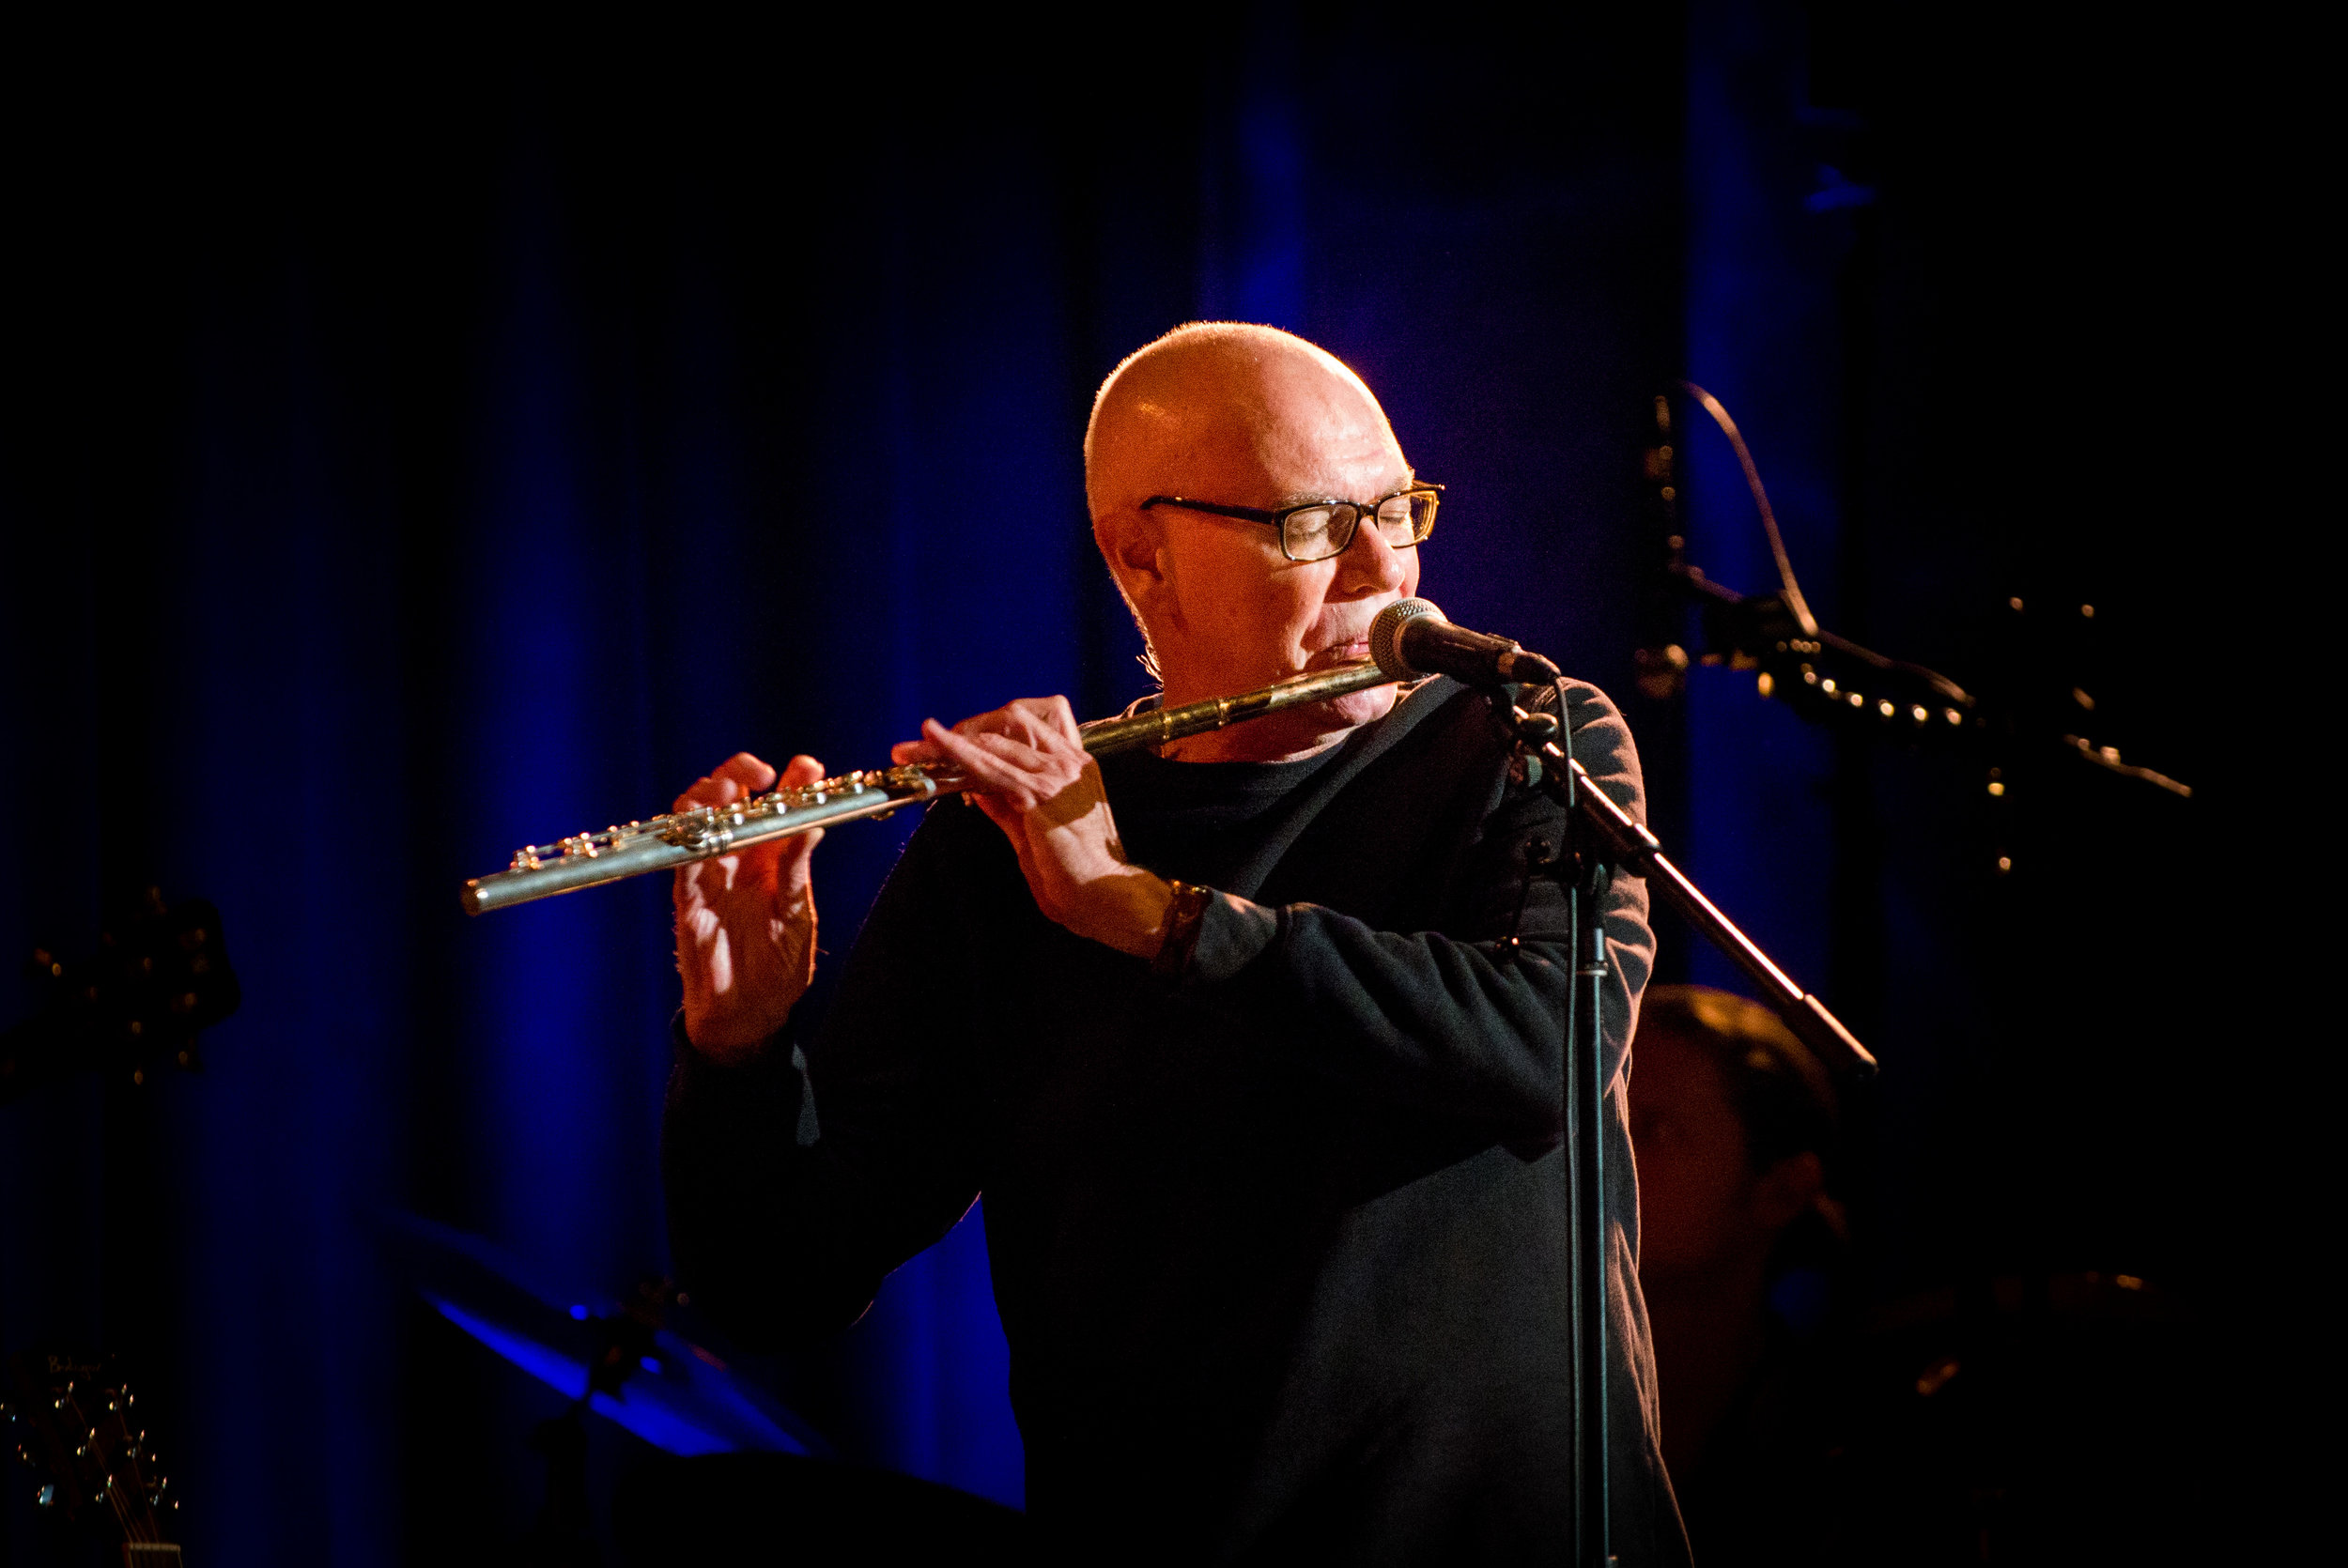 Brian Delma Taylor was a superstar, both in his orchestral arrangements of my music, and in his killing flute playing